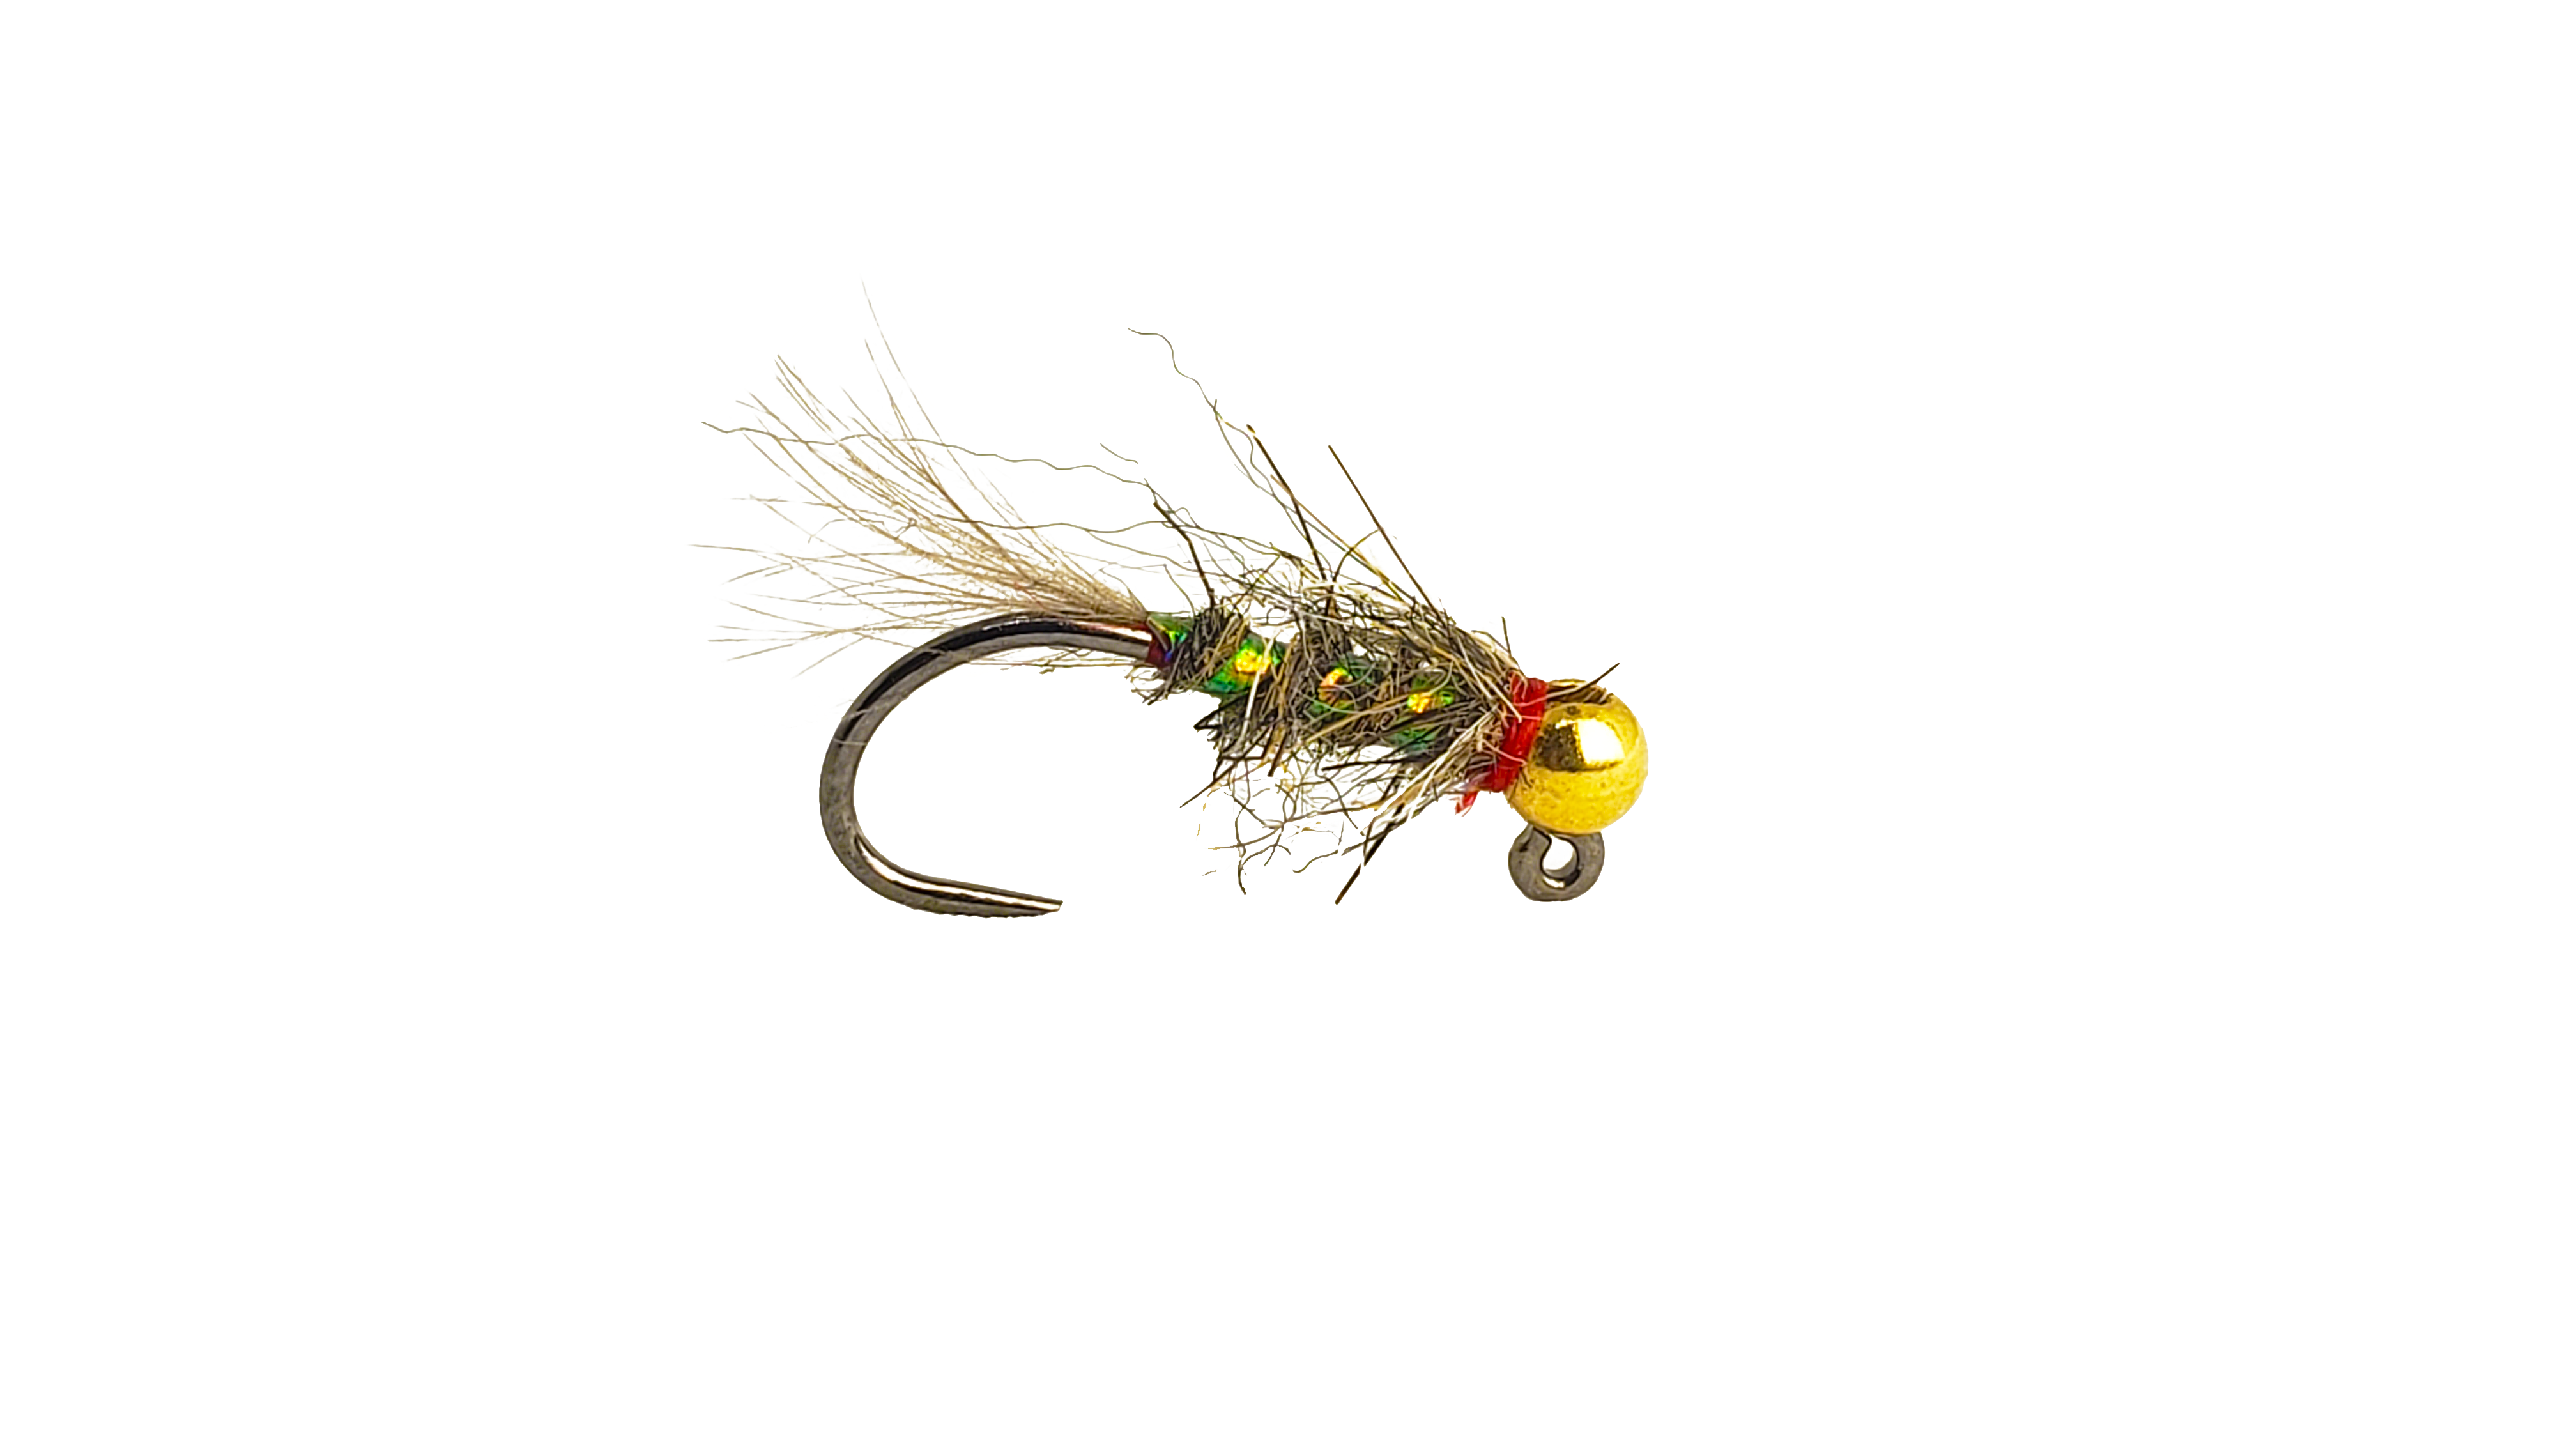 Hare's Ear Jig